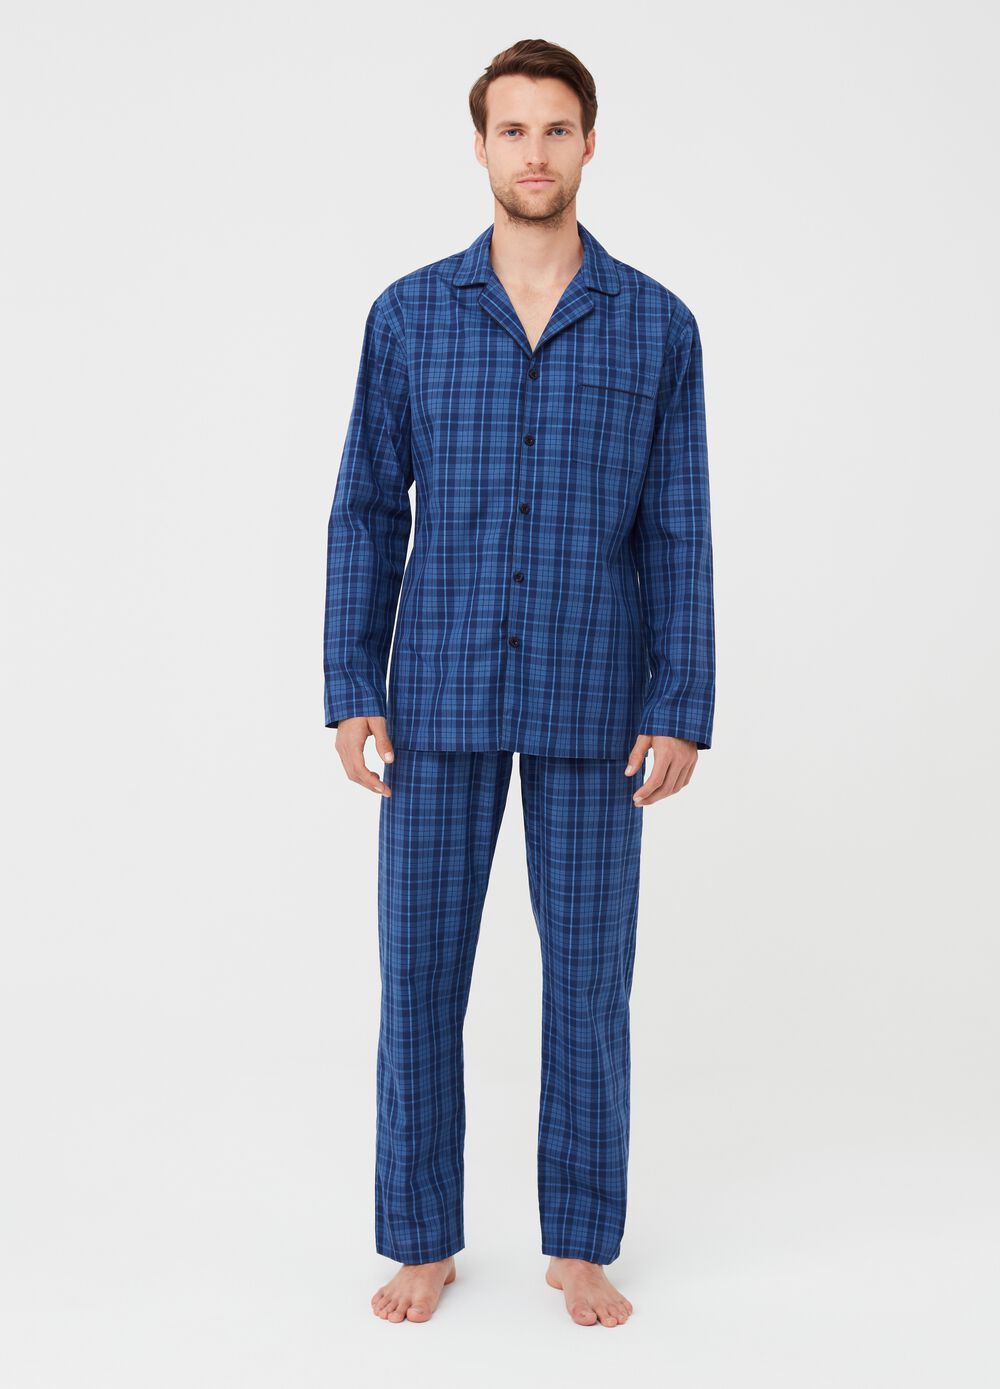 Yarn-dyed canvas pyjama trousers with check pattern